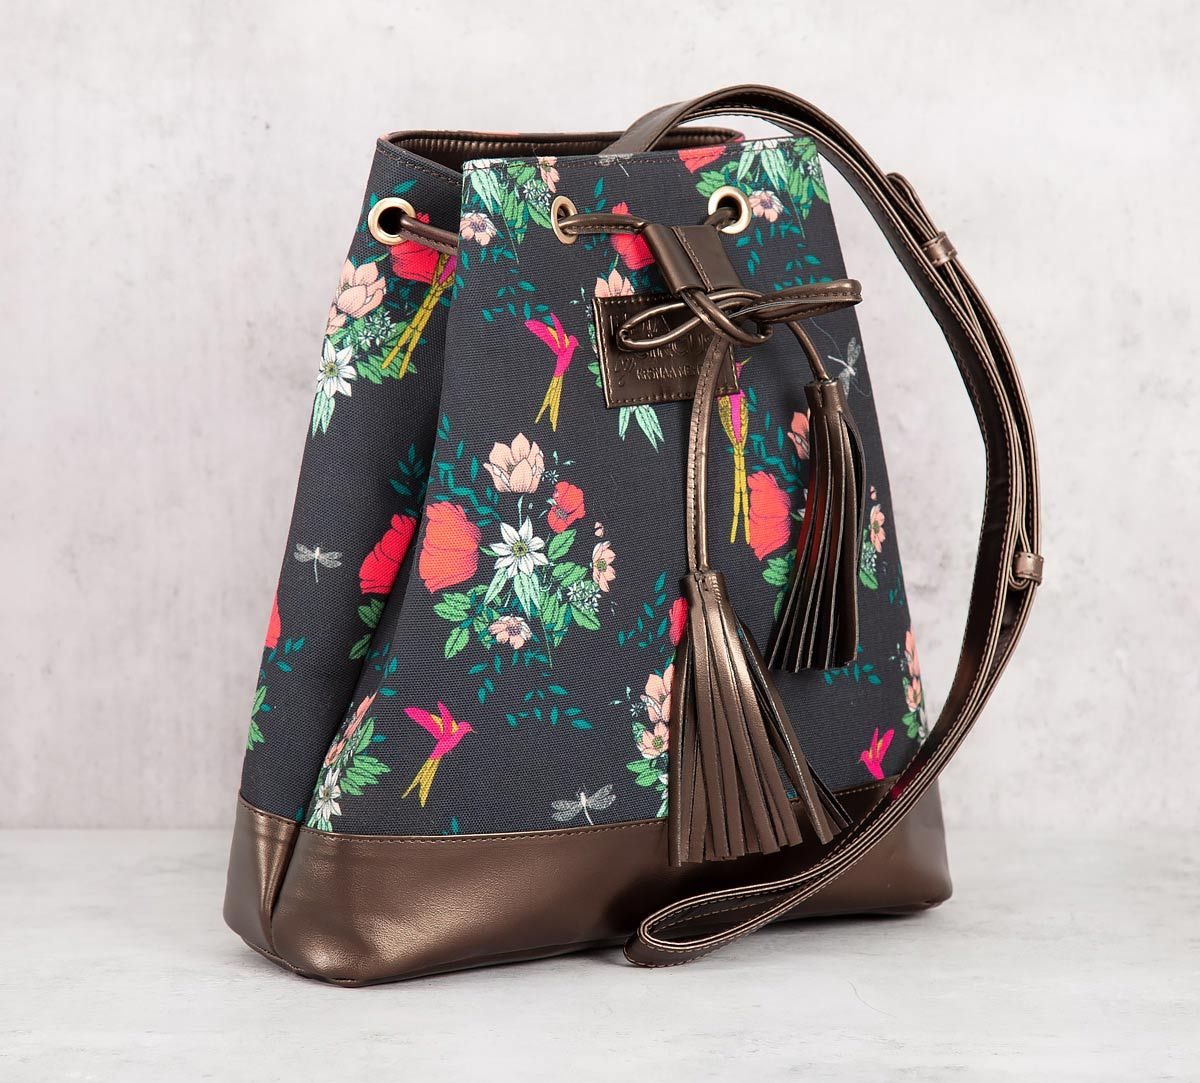 India Circus Floral Fascination Hobo Bag